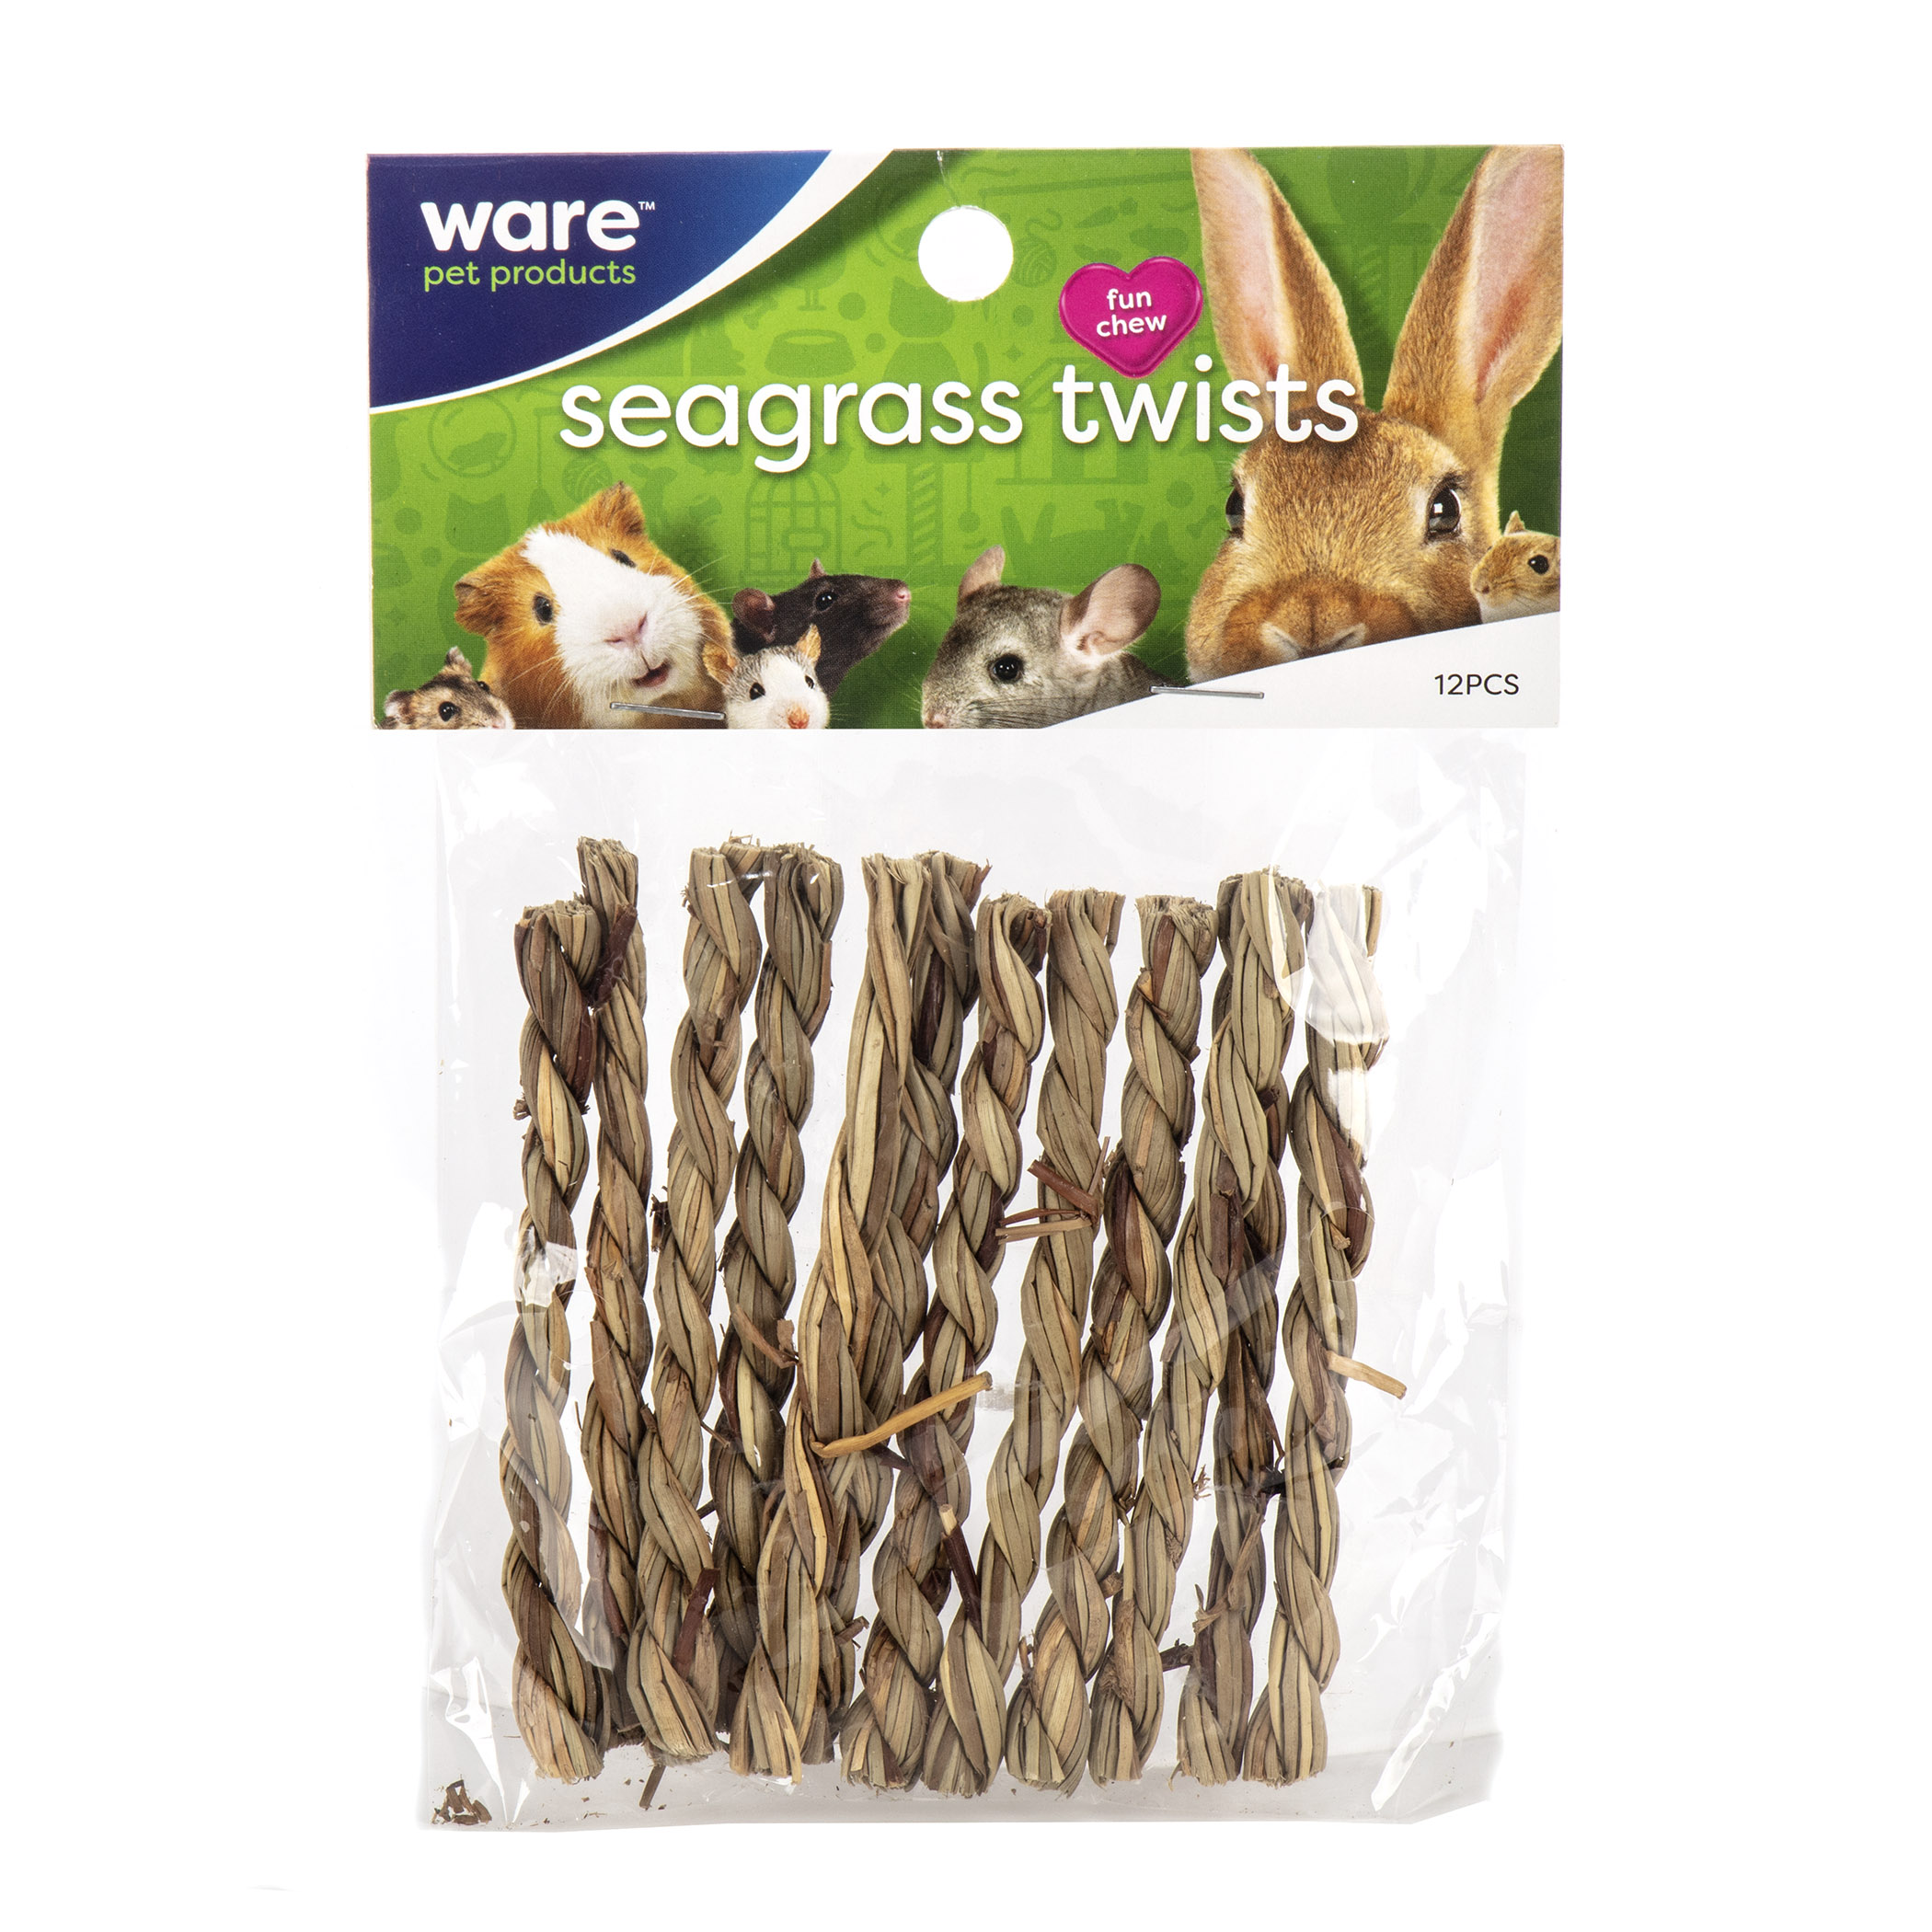 Ware Seagrass Twists, Sundried Small Pet Chew Toy, 12 count